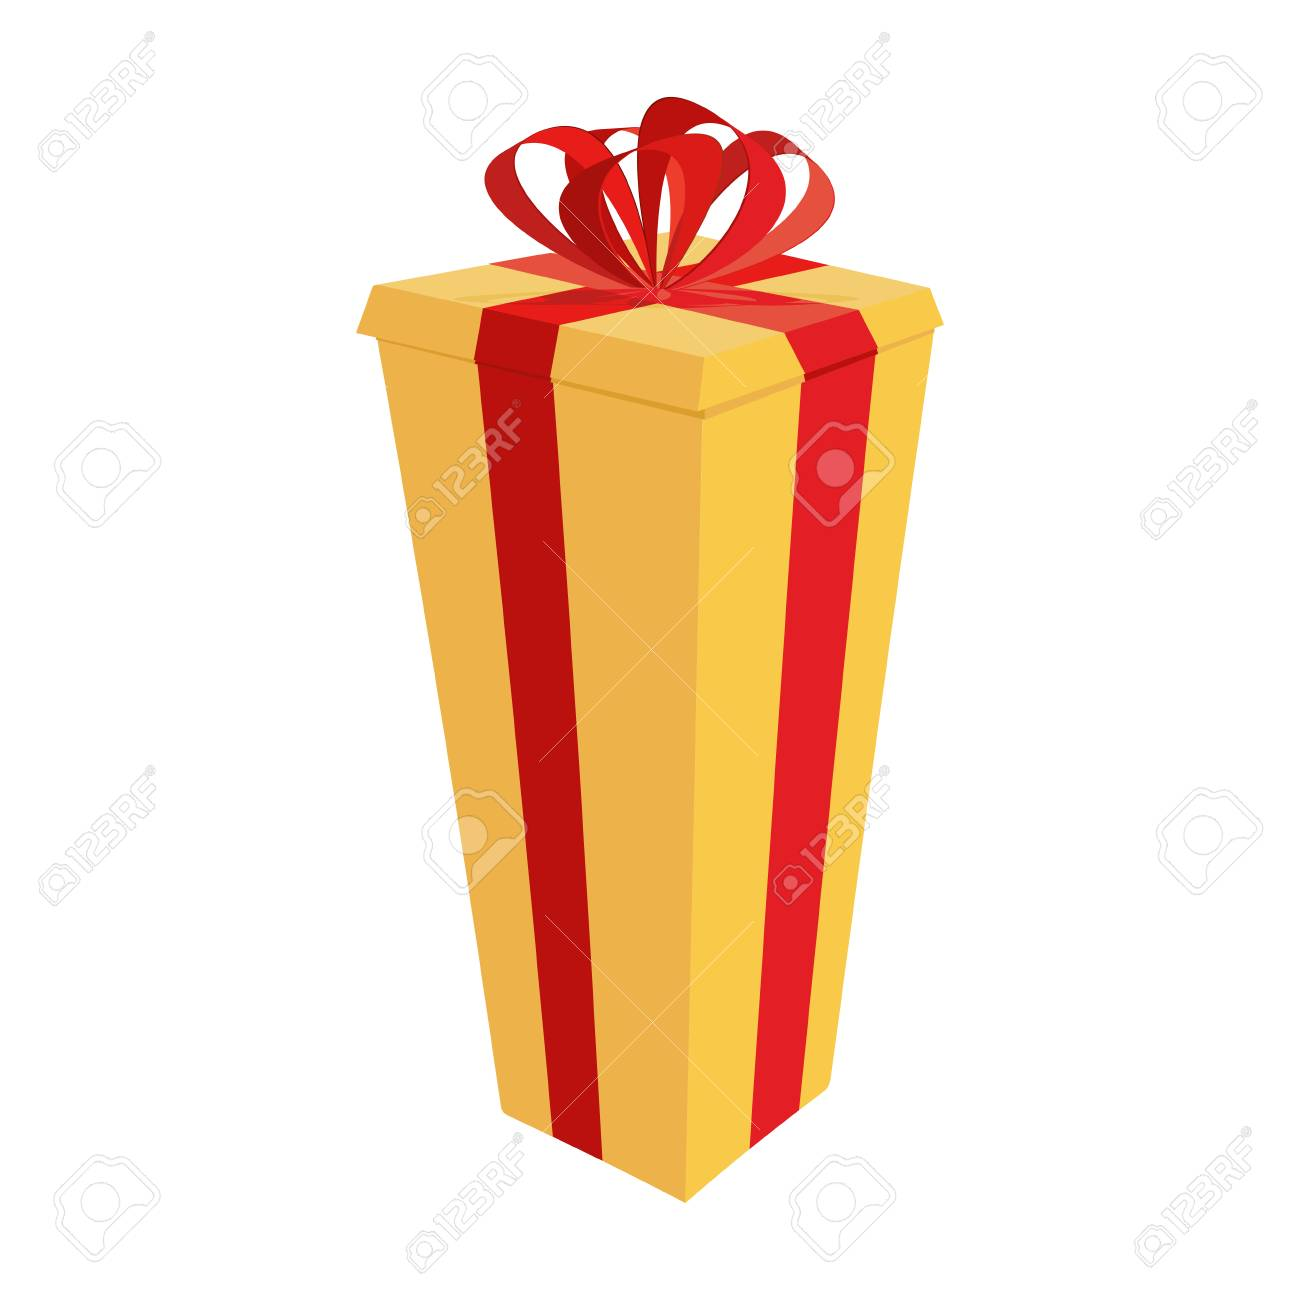 Big Gift Box Festive Tall Gift Vector Illustration For New Year Royalty Free Cliparts Vectors And Stock Illustration Image 90320755